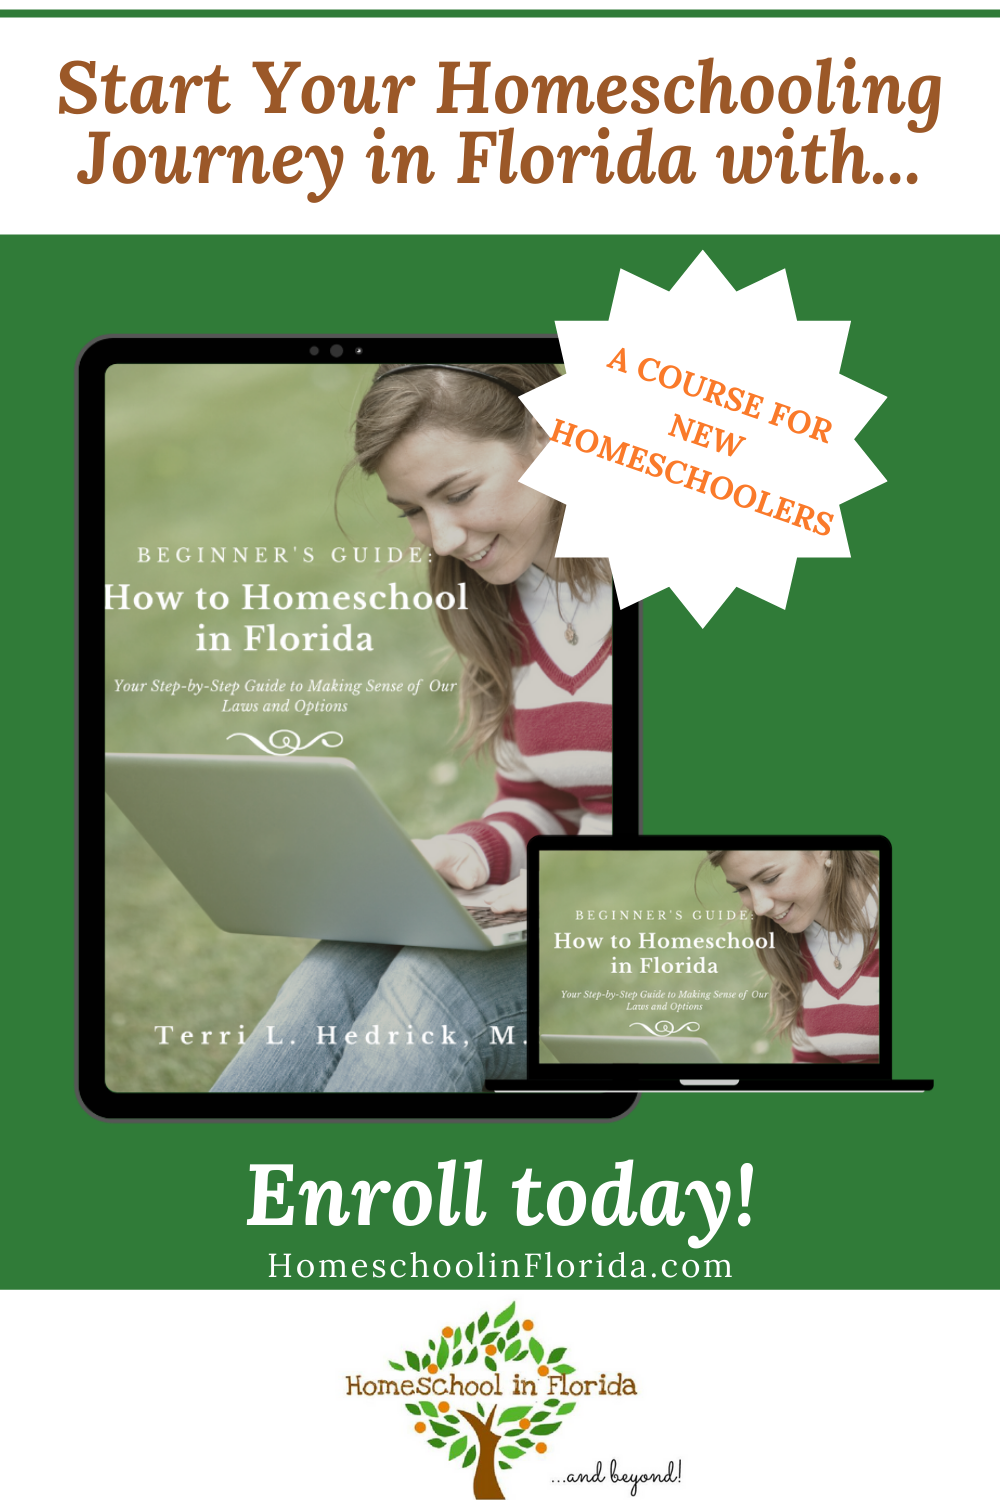 Beginner's Guide: How to Homeschool in Florida